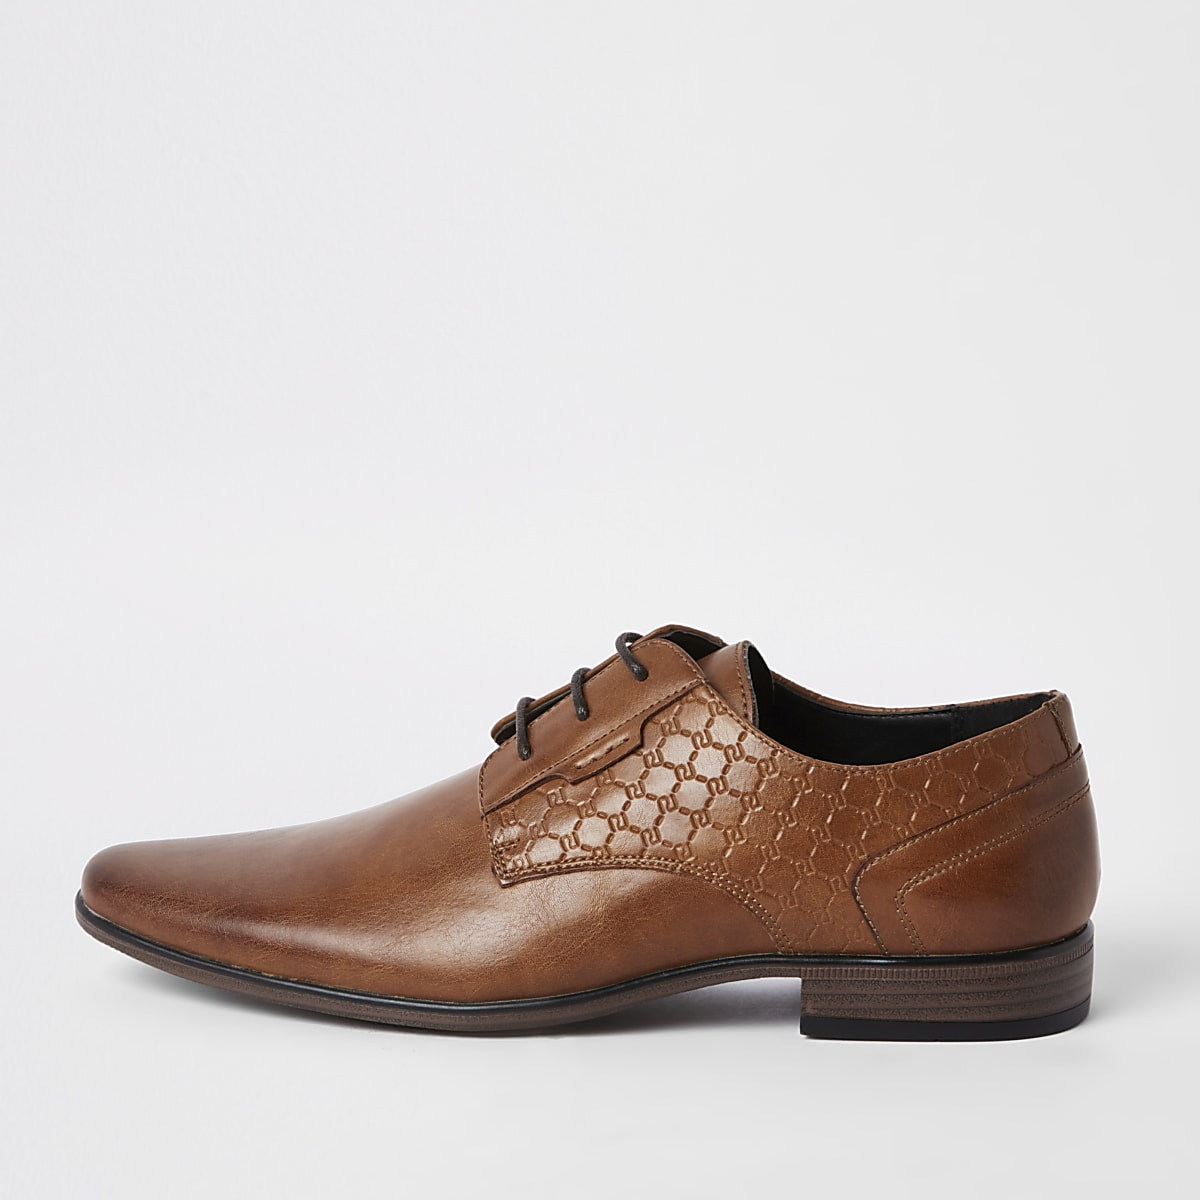 Brown 'RI' embossed derby shoes